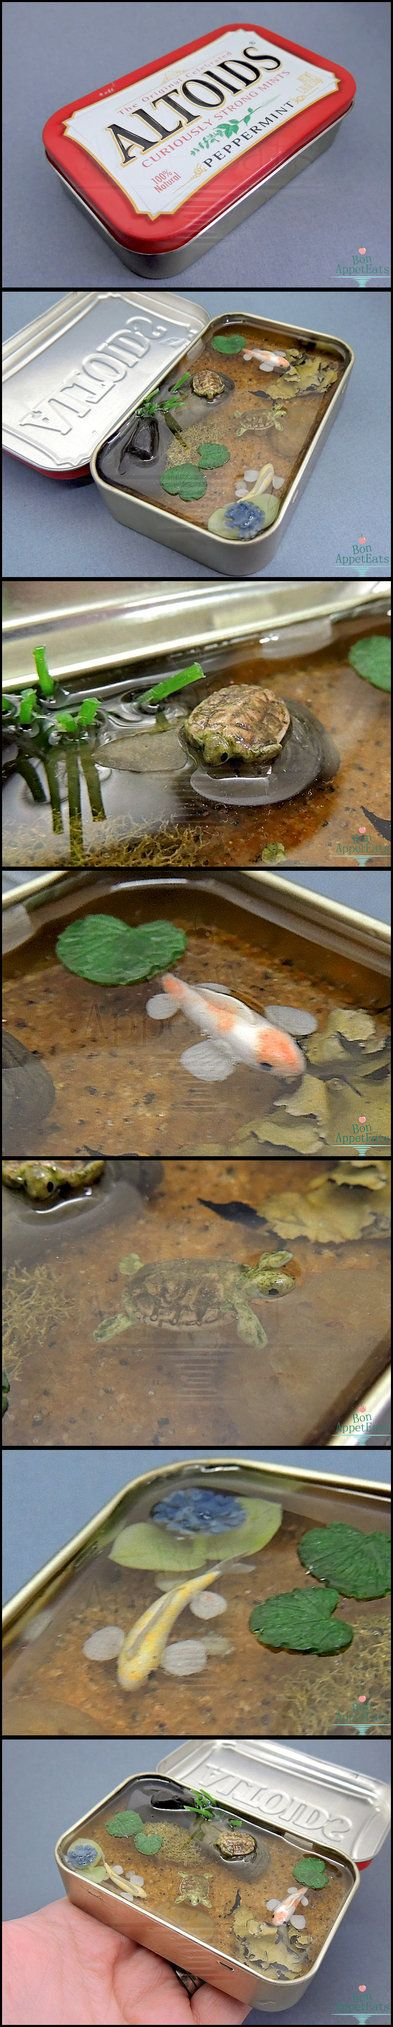 FOR SALE - Miniature Koi and Turtle Altoids Pond by Bon-AppetEats on DeviantArt